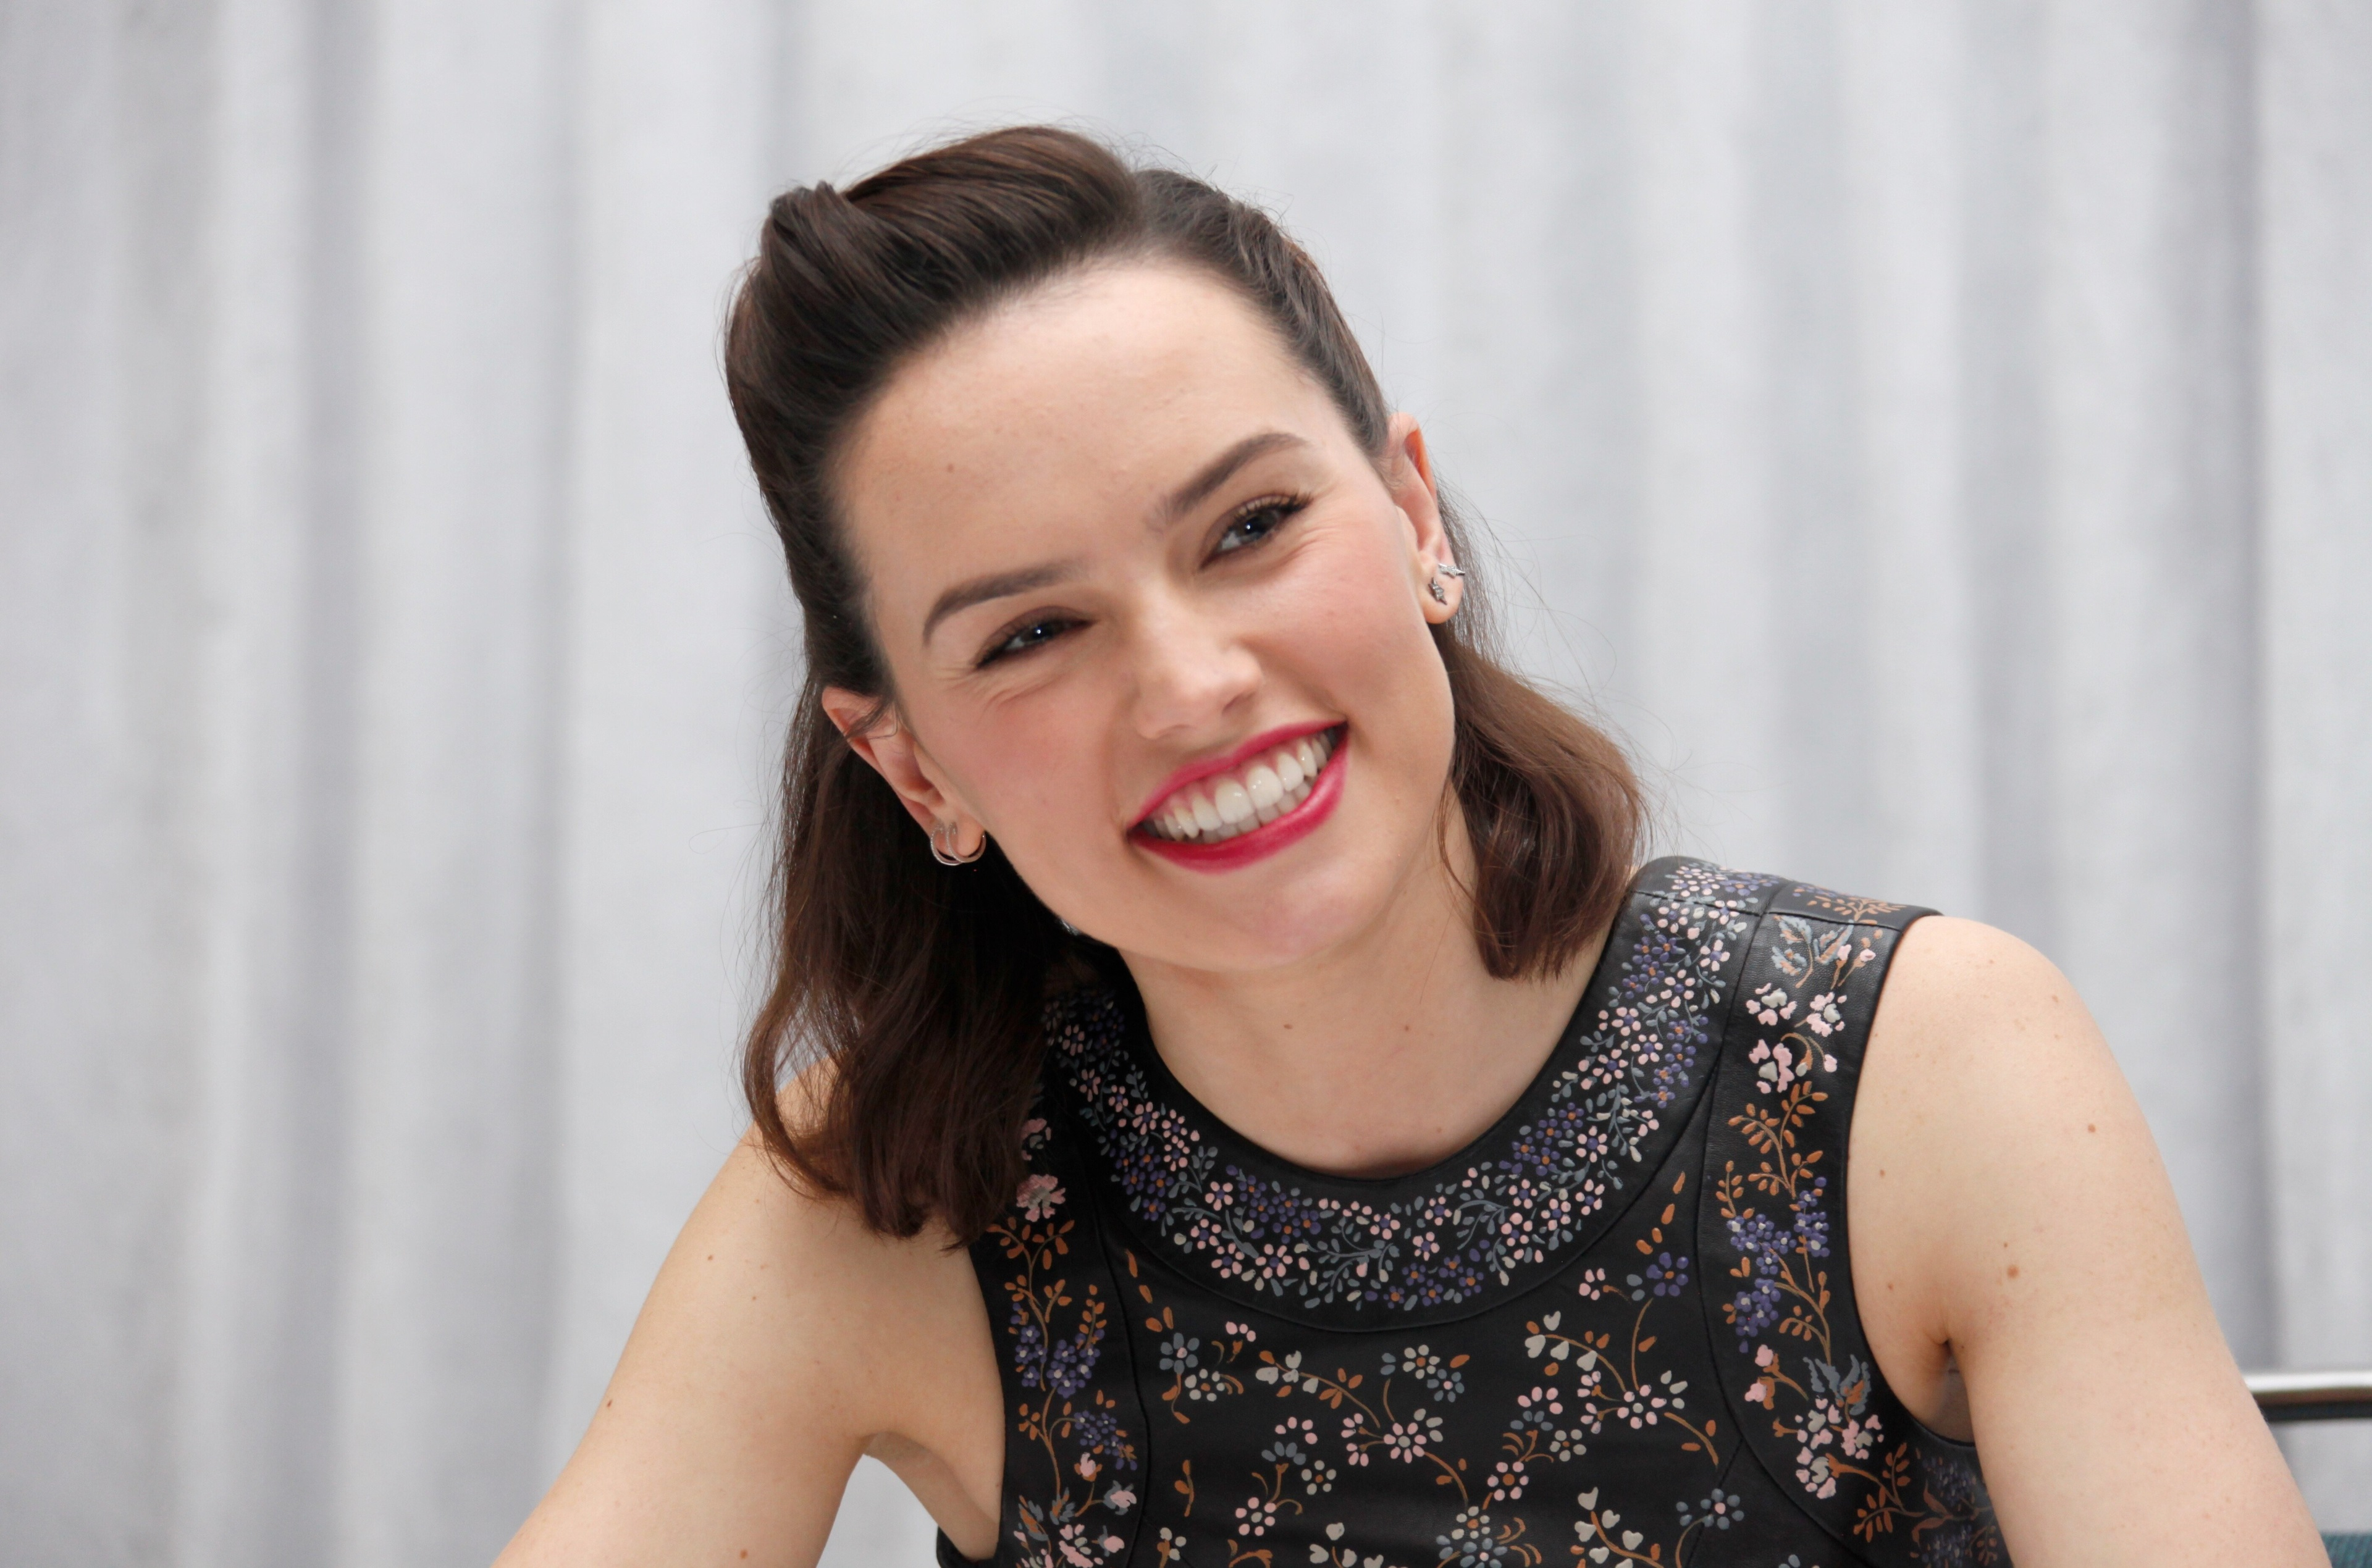 3840x2539 - Daisy Ridley Wallpapers 23